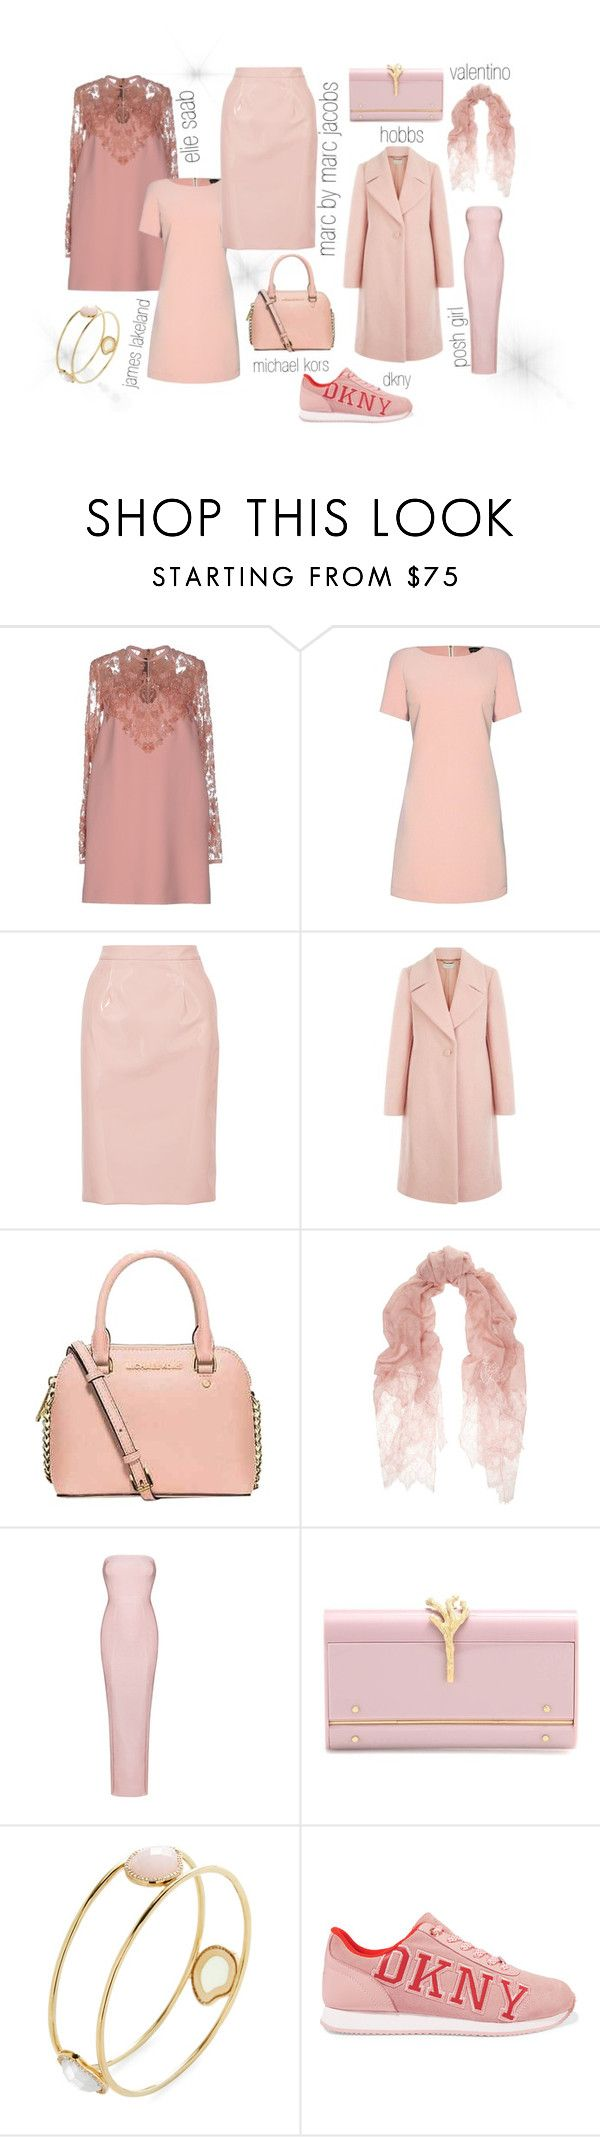 """What to Wear: Rose Quartz"" by gioellia ❤ liked on Polyvore featuring Elie Saab, James Lakeland, Marc by Marc Jacobs, Hobbs, Michael Kors, Valentino, Posh Girl, Marcia Moran and DKNY"